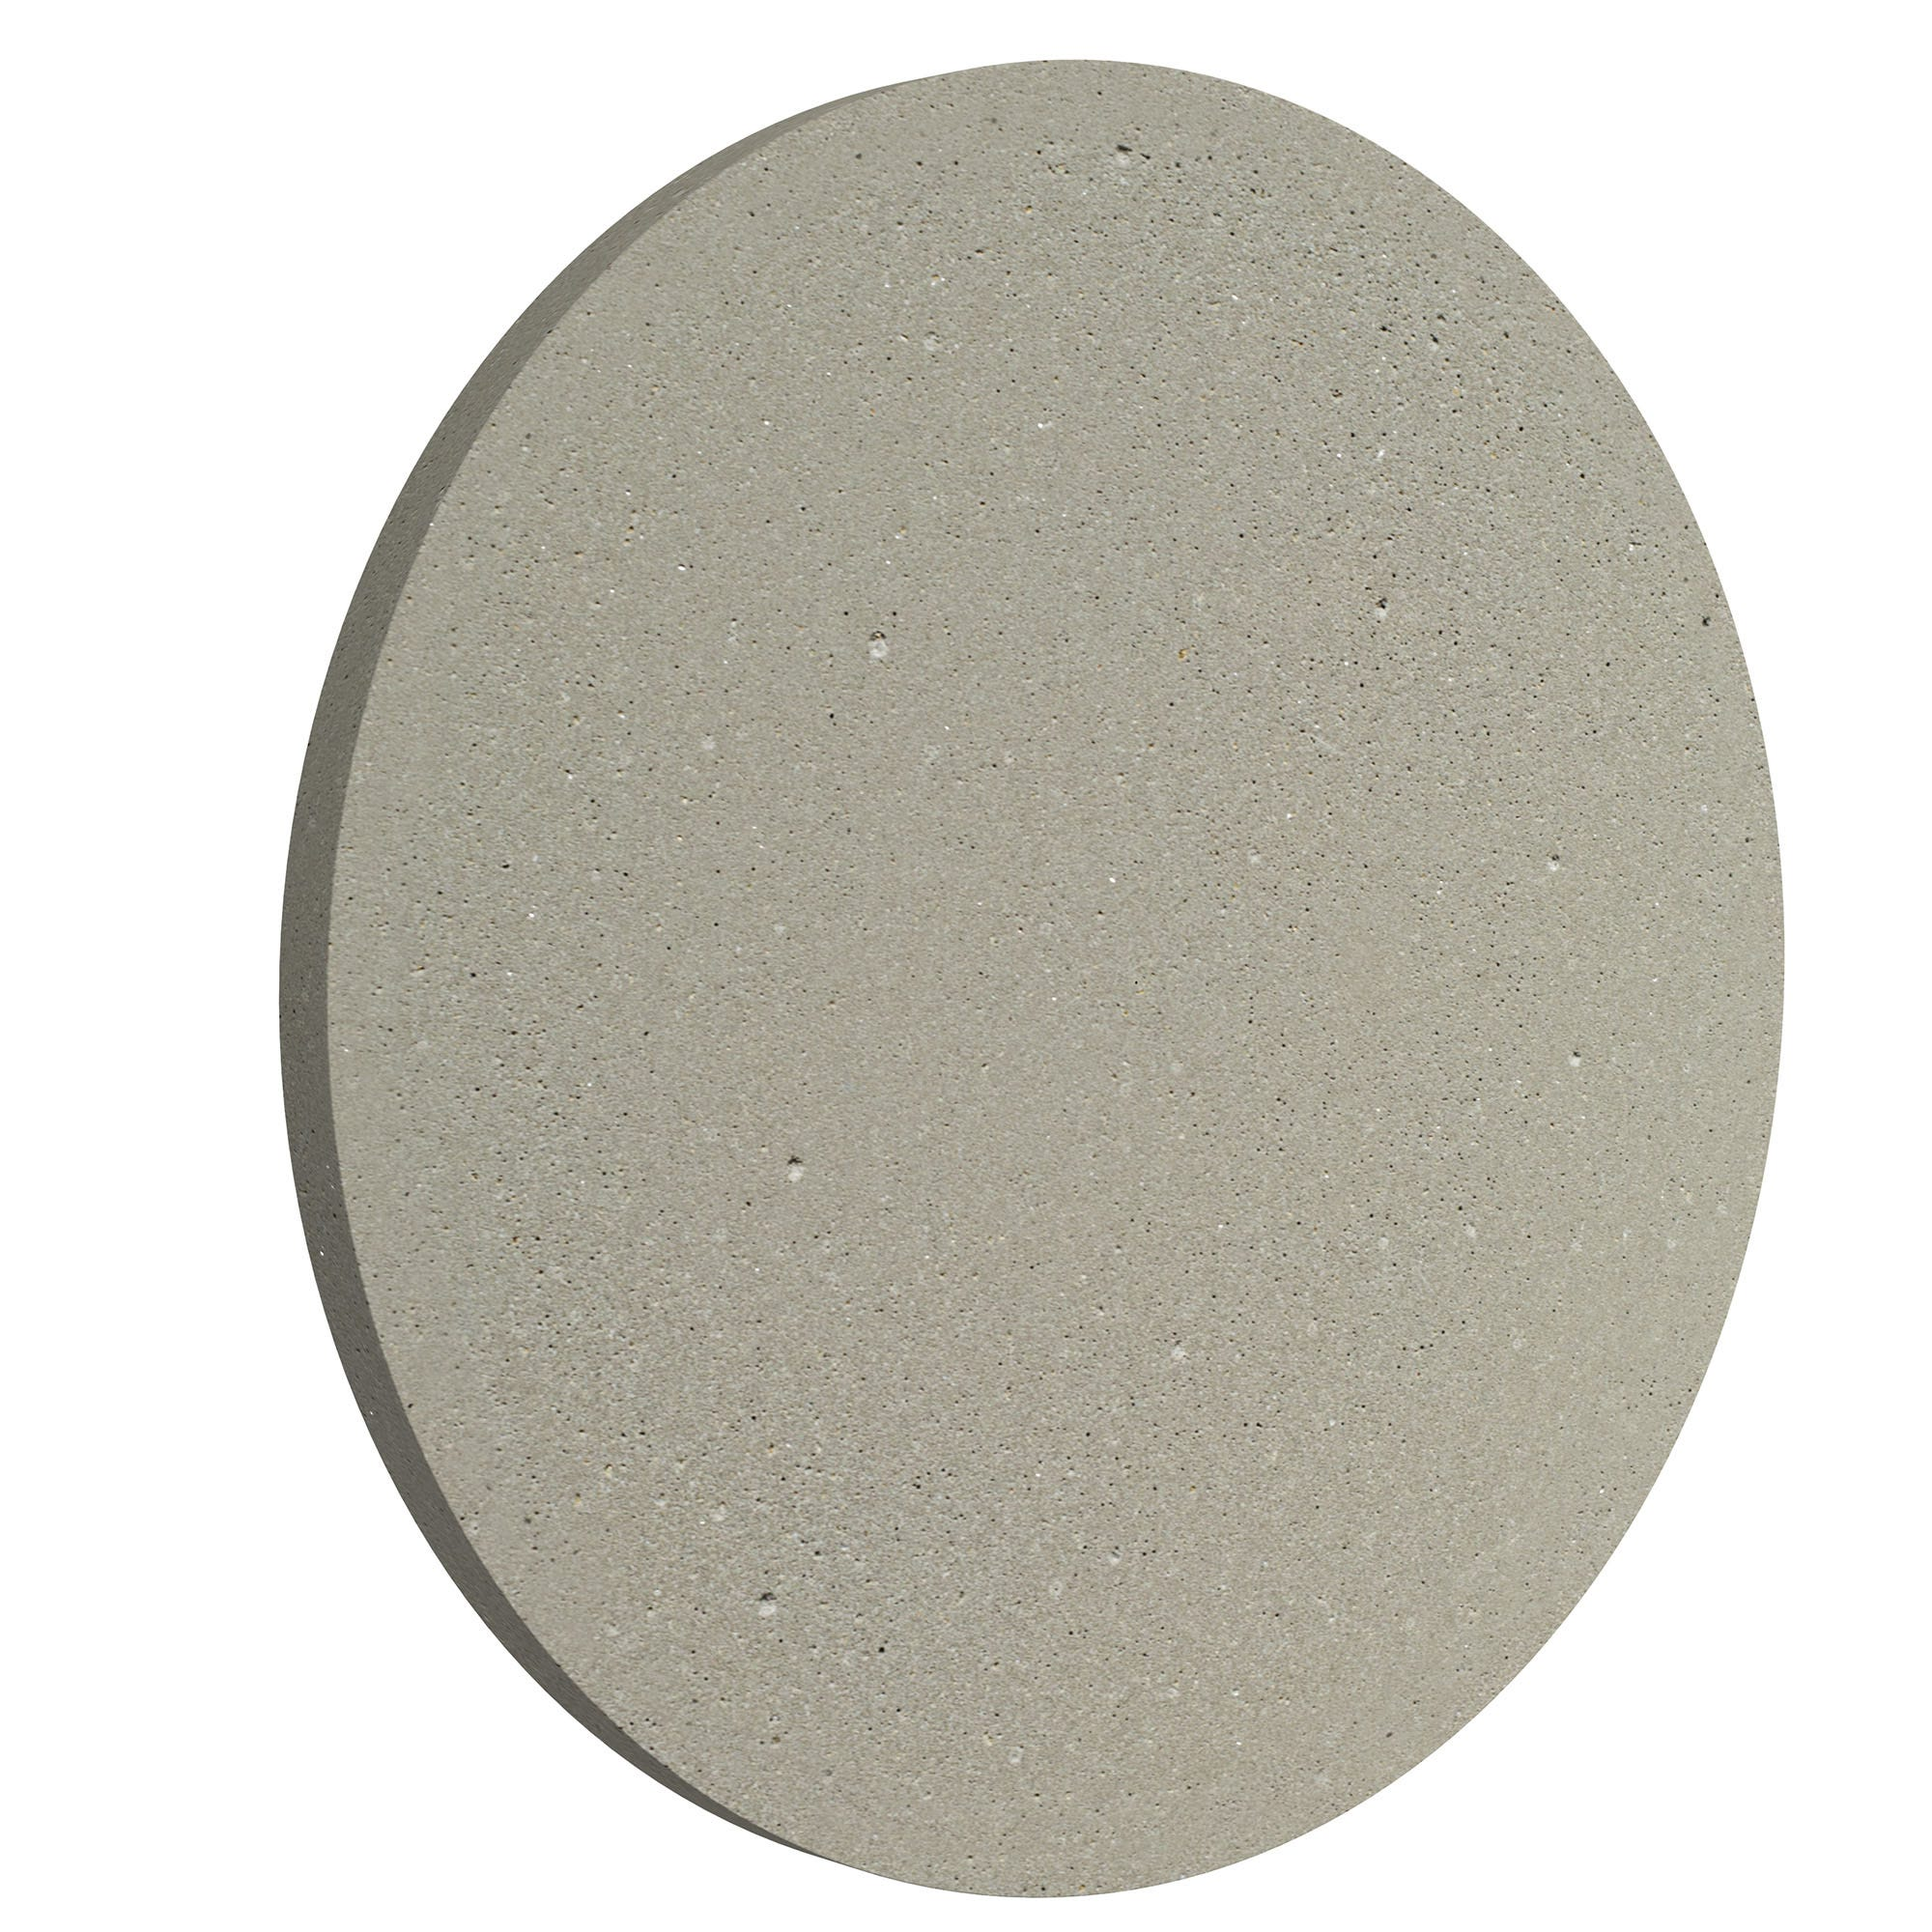 As Shown: Camouflage Wall Light Concrete.